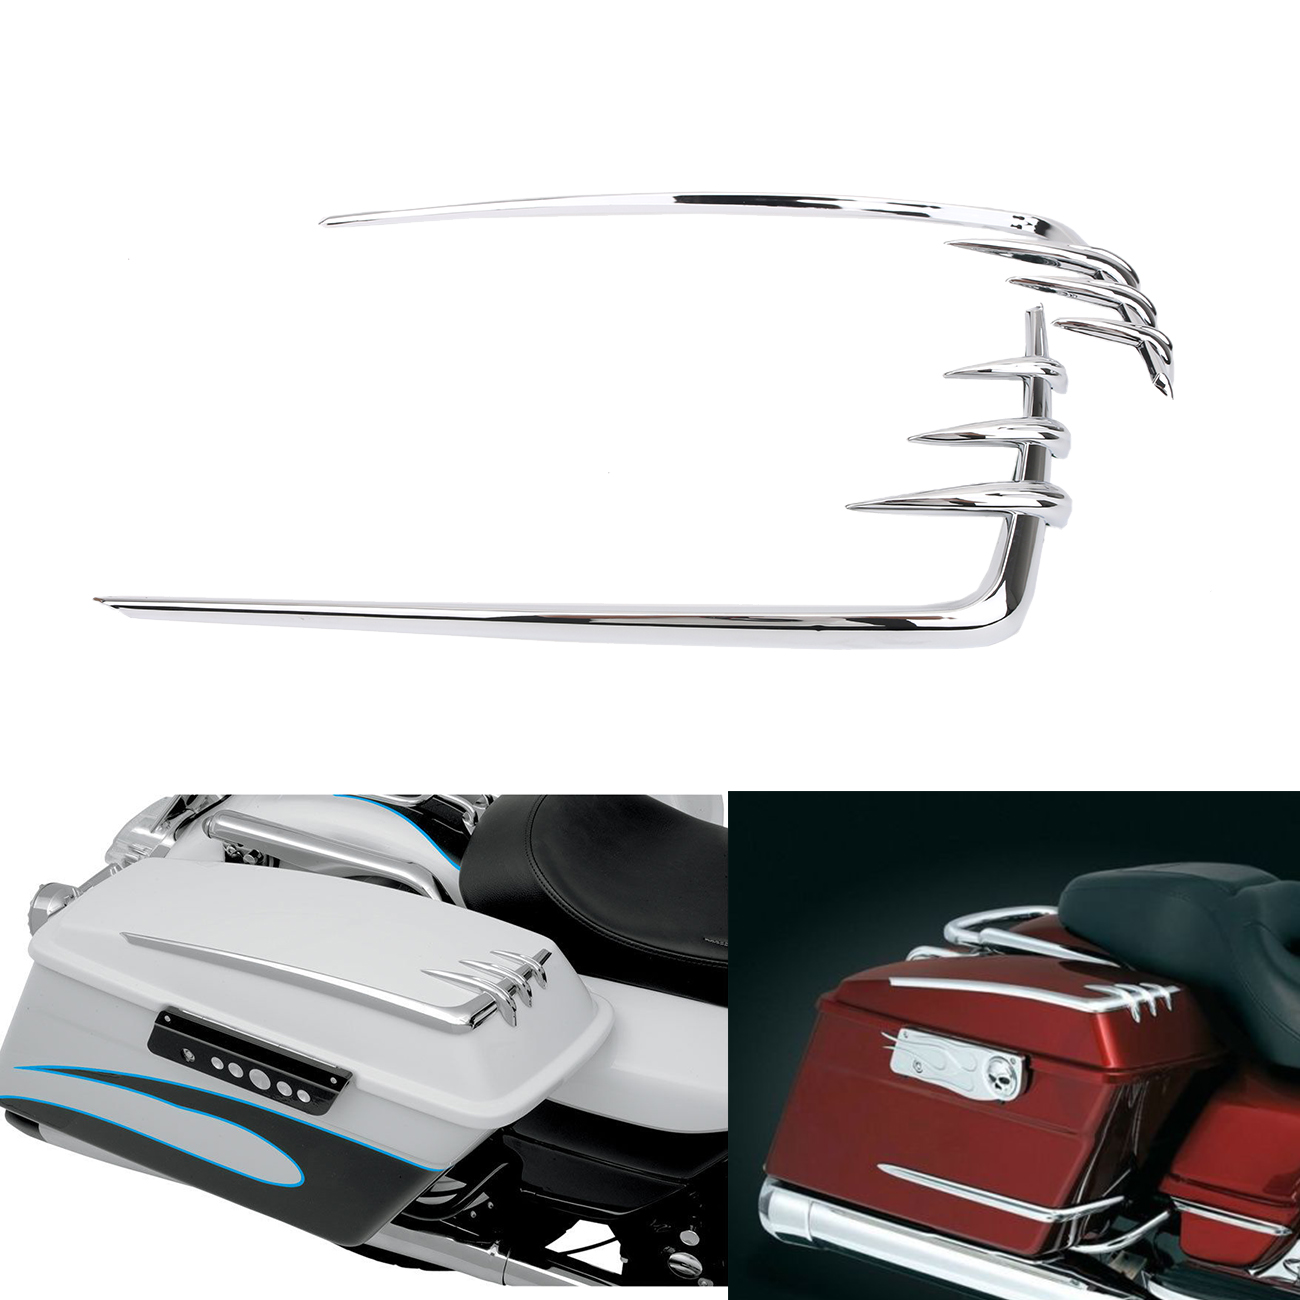 1Pair Chrome Saddle Box Saddlebag Lid Accents Cover For Harley HD Road King Electra / Tri Glide Motorcycle Bike Accessories helo he866 gloss black wheel with chrome accents 20x8 5 6x135mm